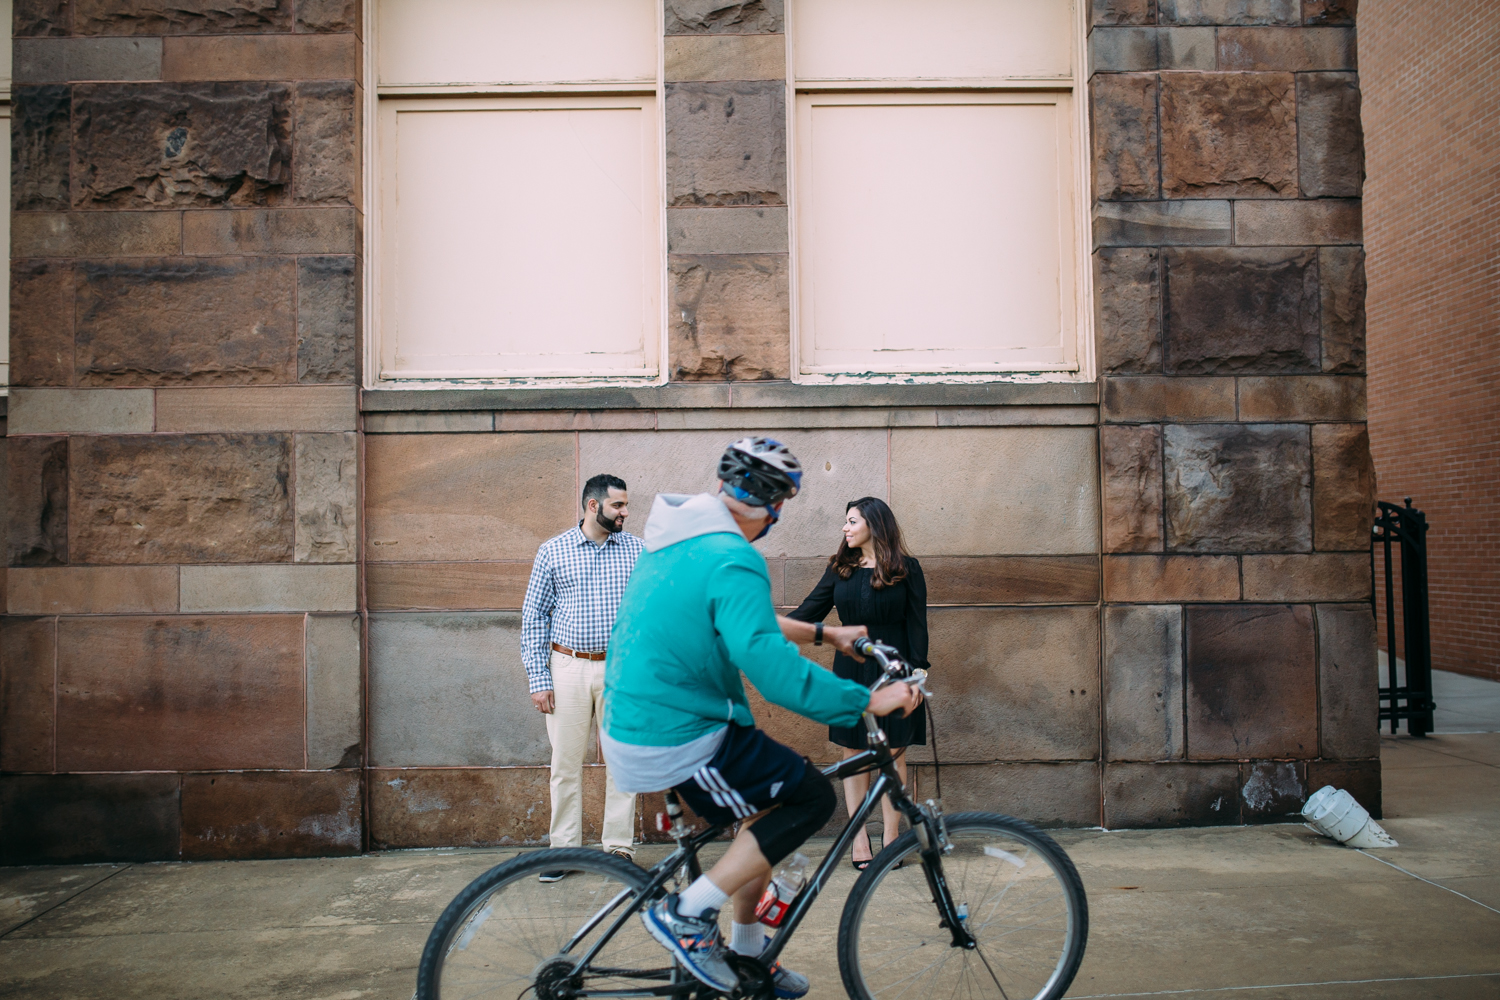 Ashley-reed-photography-pittsburgh-engagement-engagementphotography-engagementphotographer-stationsquare-statio-square-pittsburghengagementphotography-21.jpg